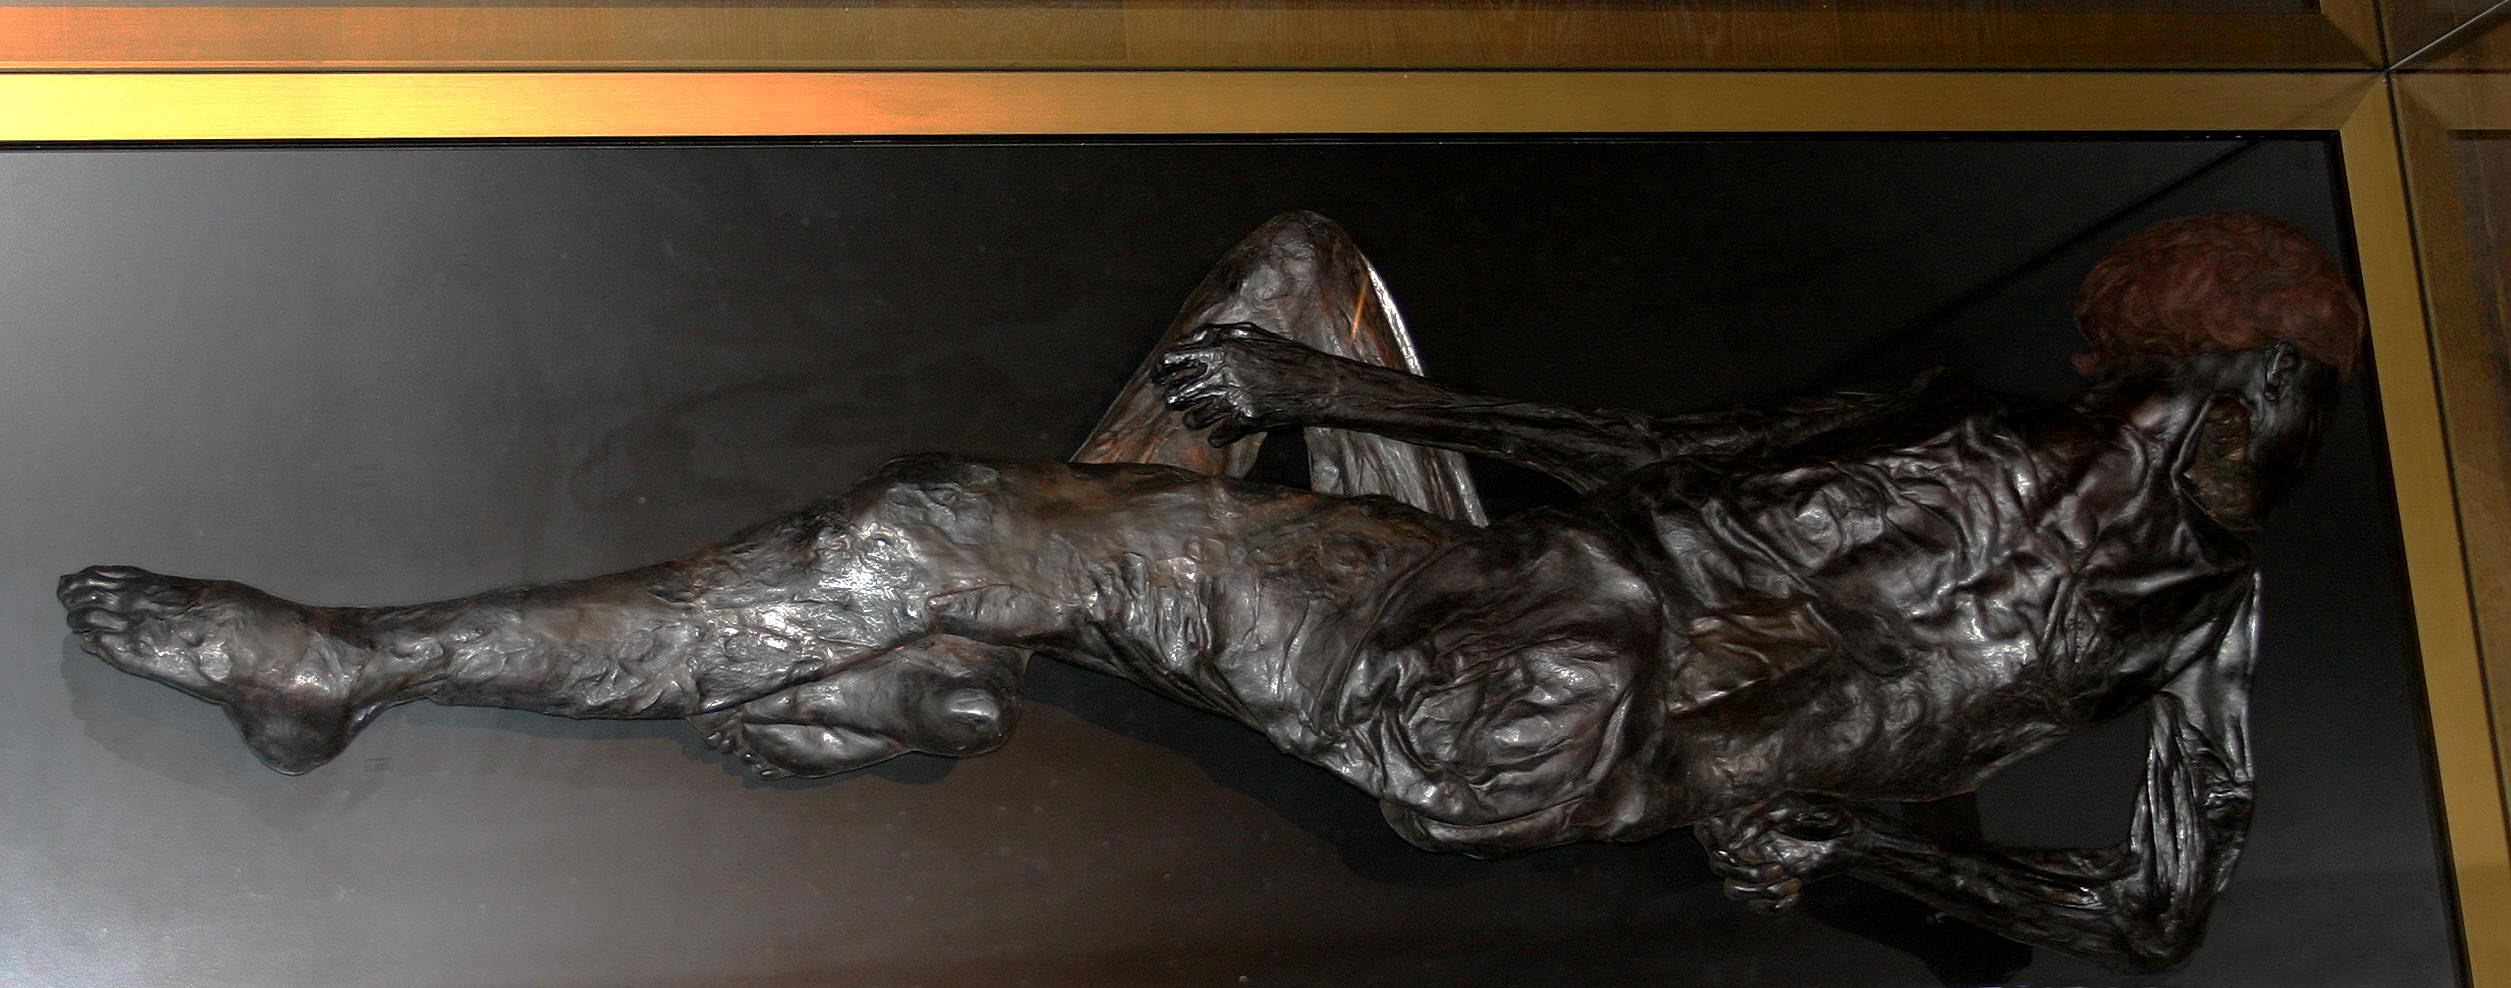 tollund man radiocarbon dating When scientists examined the body of the tollund man, they found detailed evidence of early iron-age life radiocarbon dating determined that the man died between 375-210 bc at.